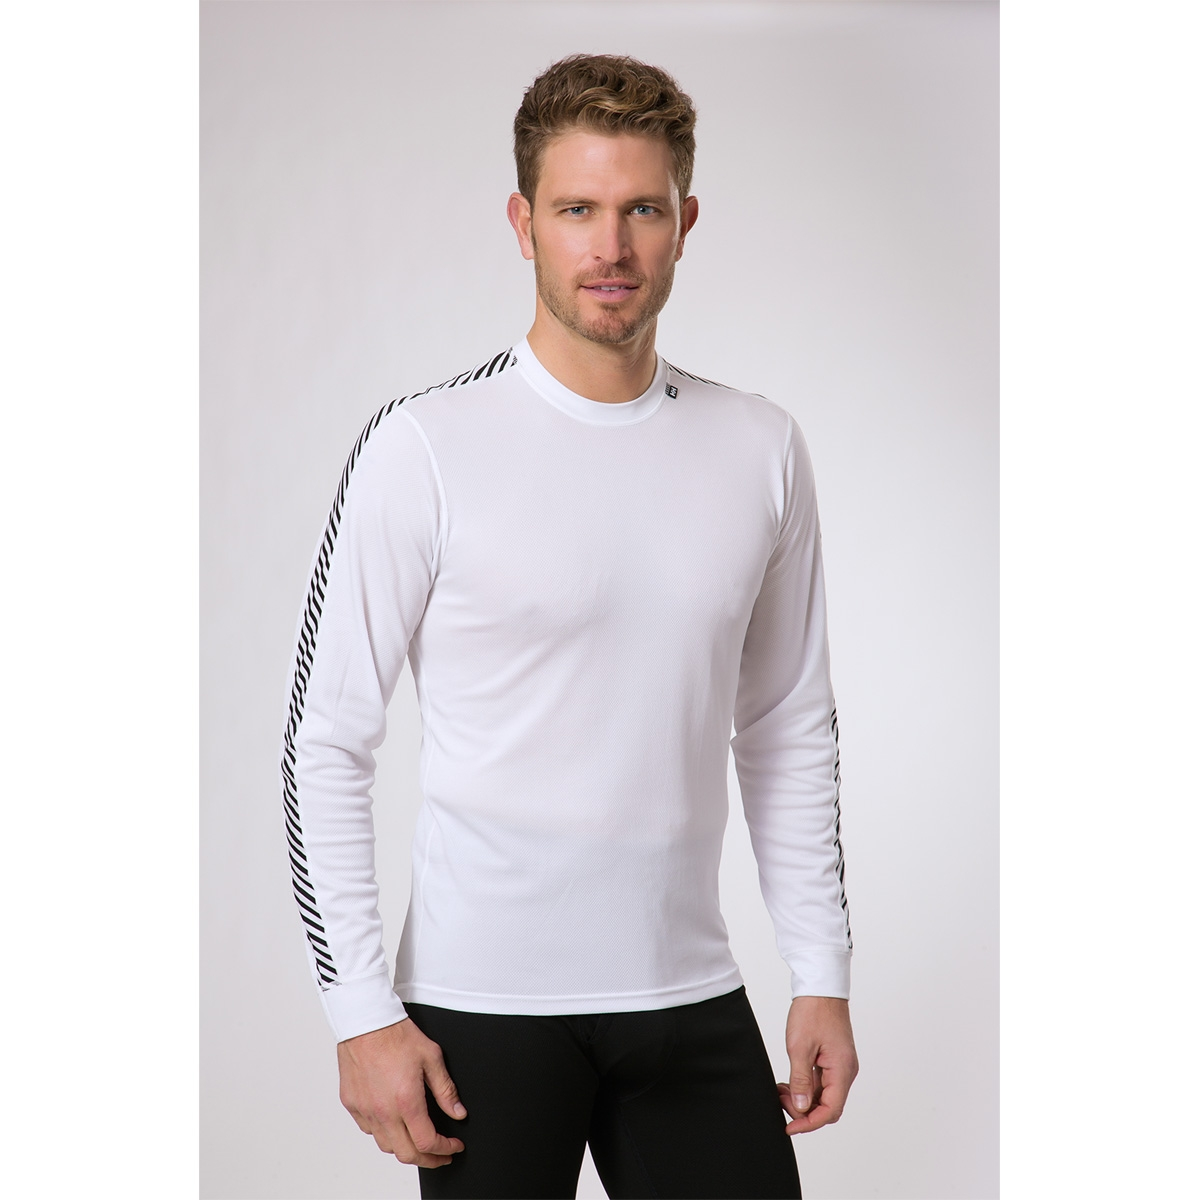 c7752a2bbe ... Image of Helly Hansen HH Dry Mens Stripe Crew - White ...